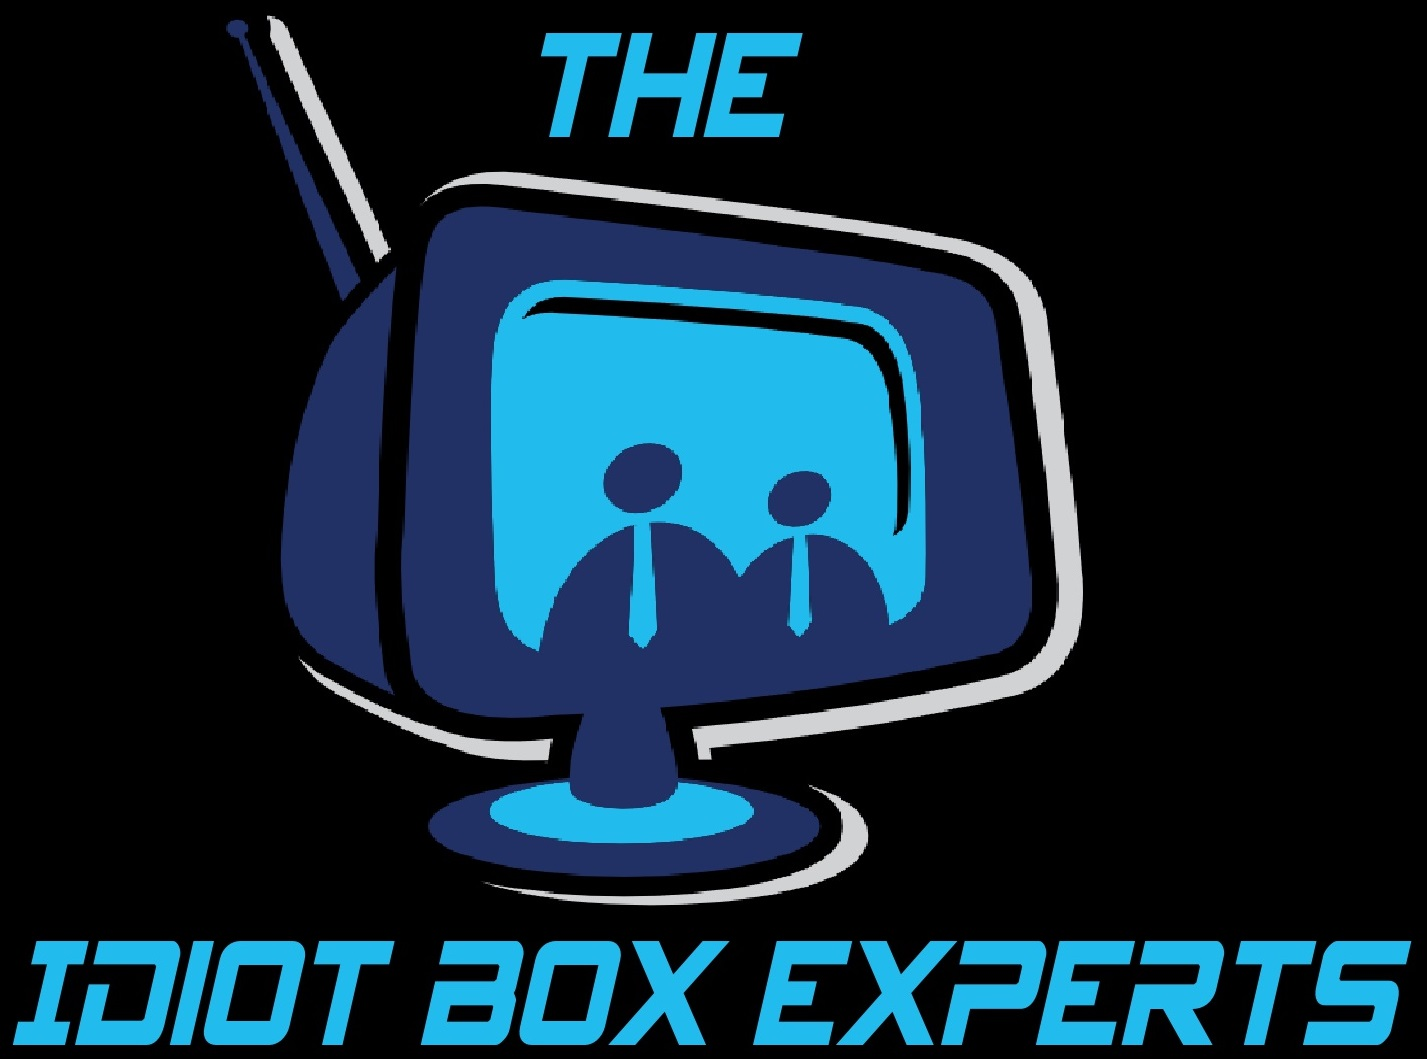 The Idiot Box Experts